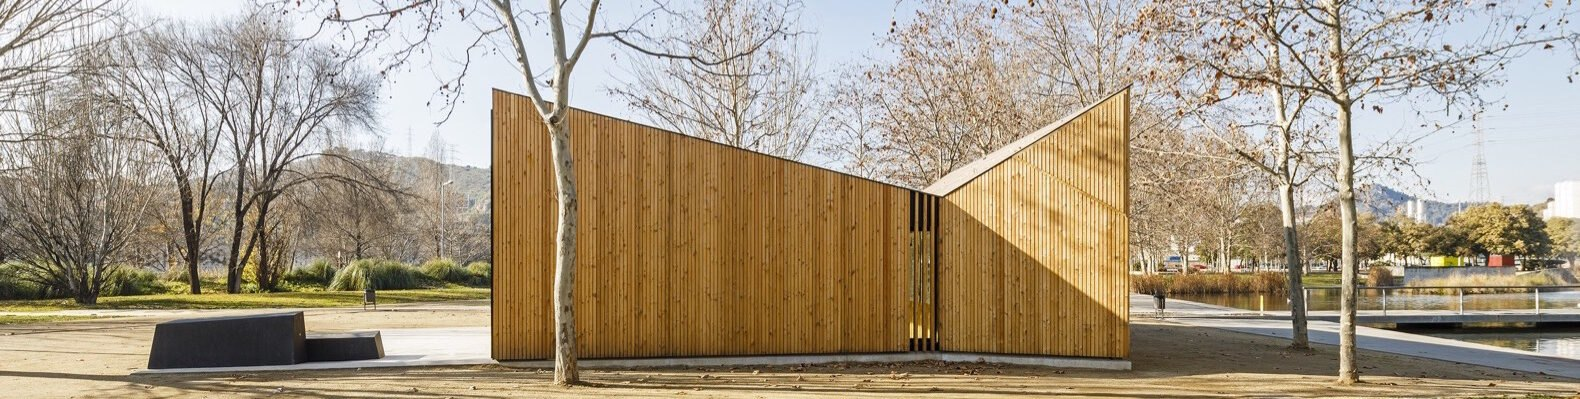 timber building with sharp angled roofs